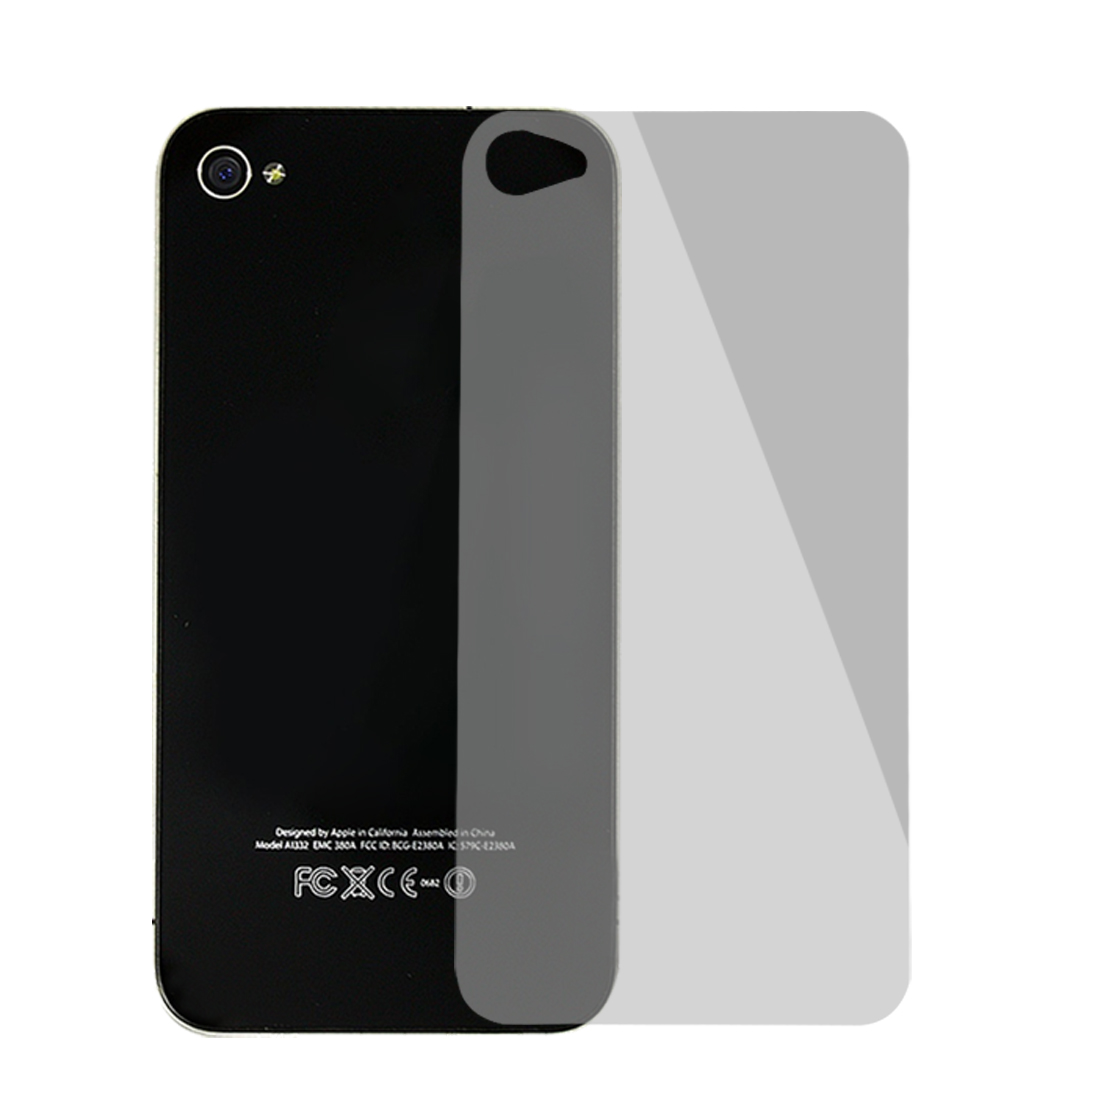 3D Hex Design Back Screen Cover Filme Guard Clear for iPhone 4 4G 4S 4GS